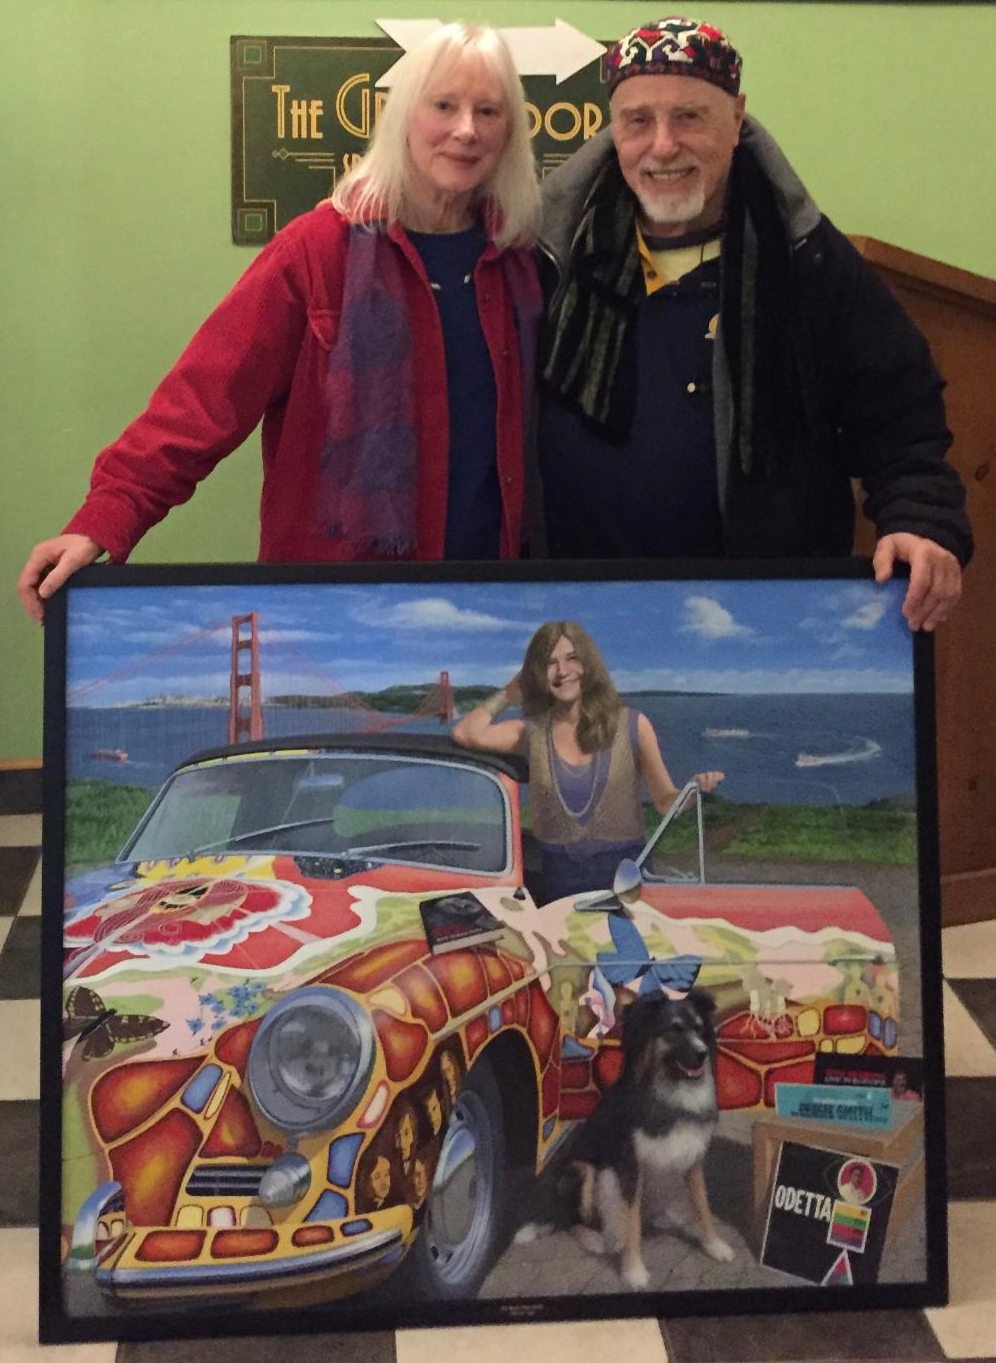 Chris with Dave Getz, drummer and founding member of Big Brother and the Holding Company (and painter too!)